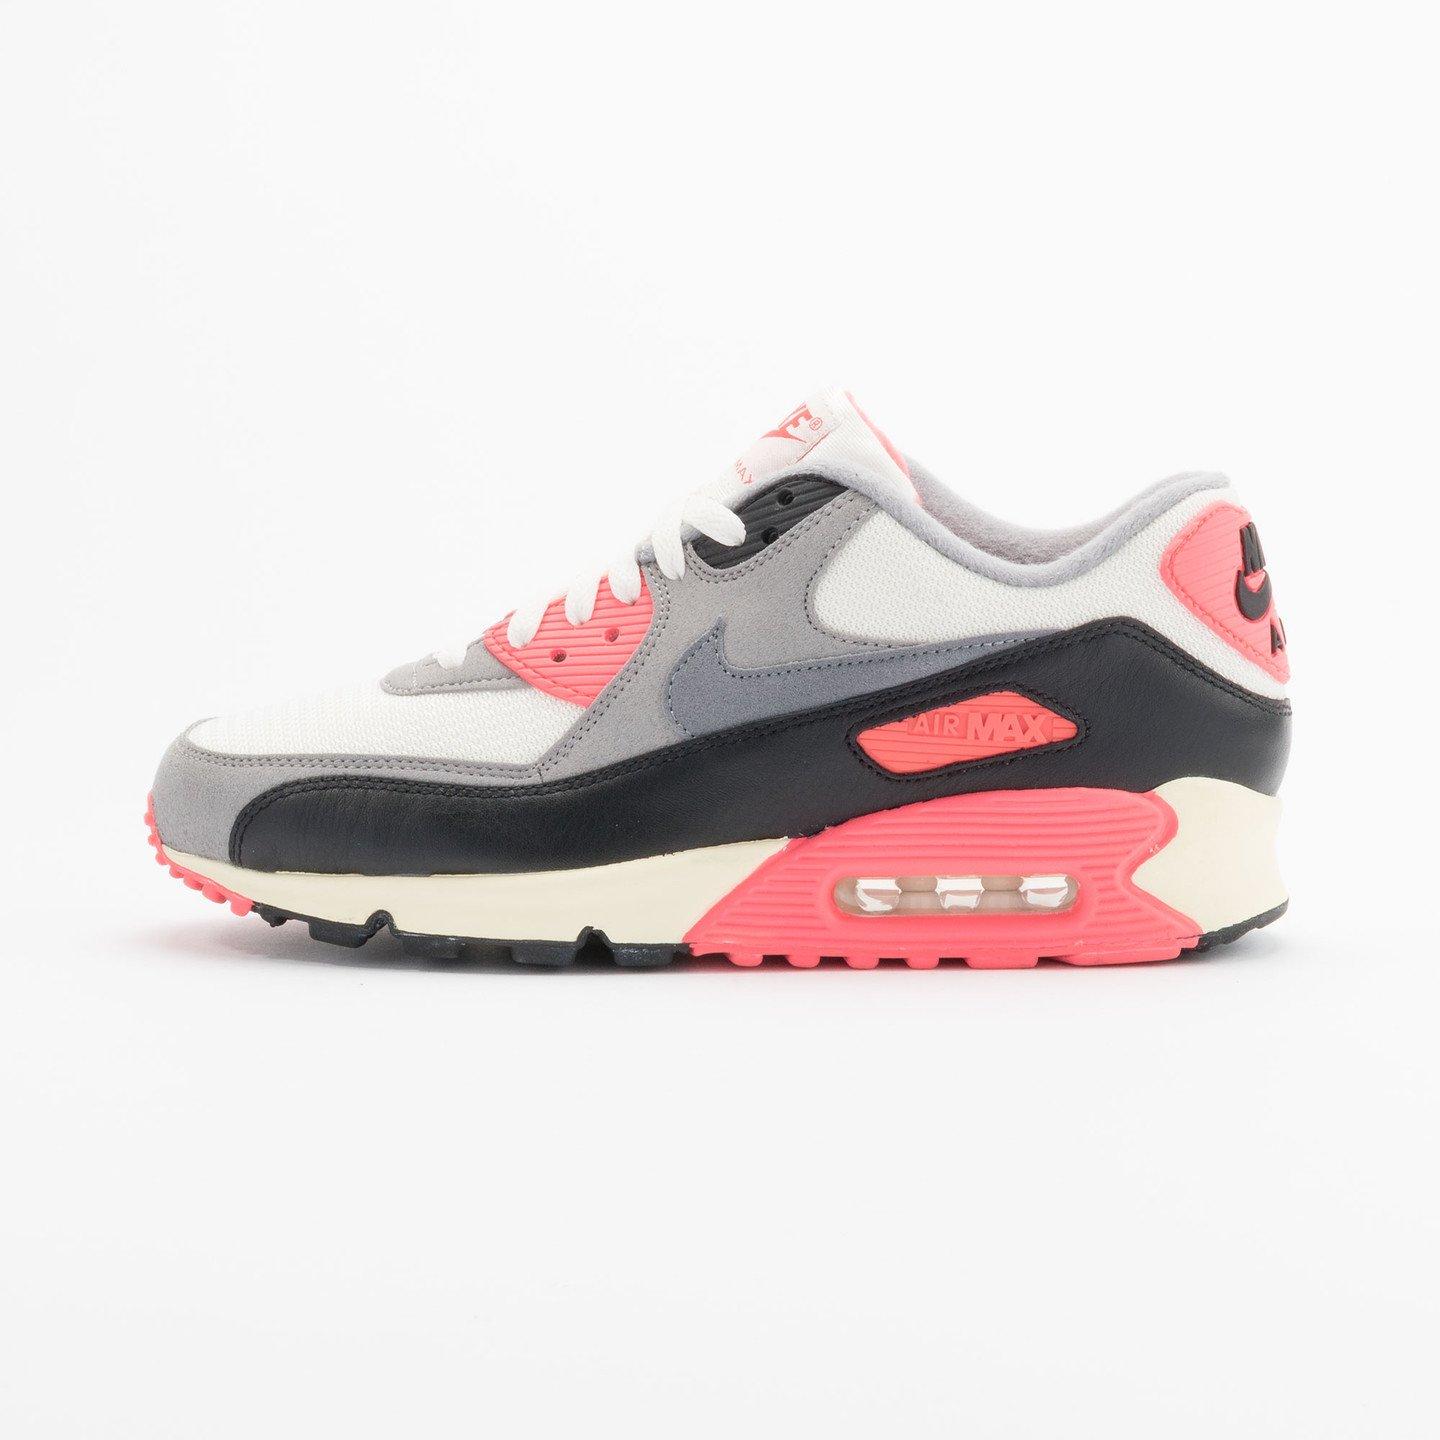 Nike Air Max 90 OG Vintage Infrared Sail/Cool Grey-Mdm Grey-Infrrd 543361-161-48.5